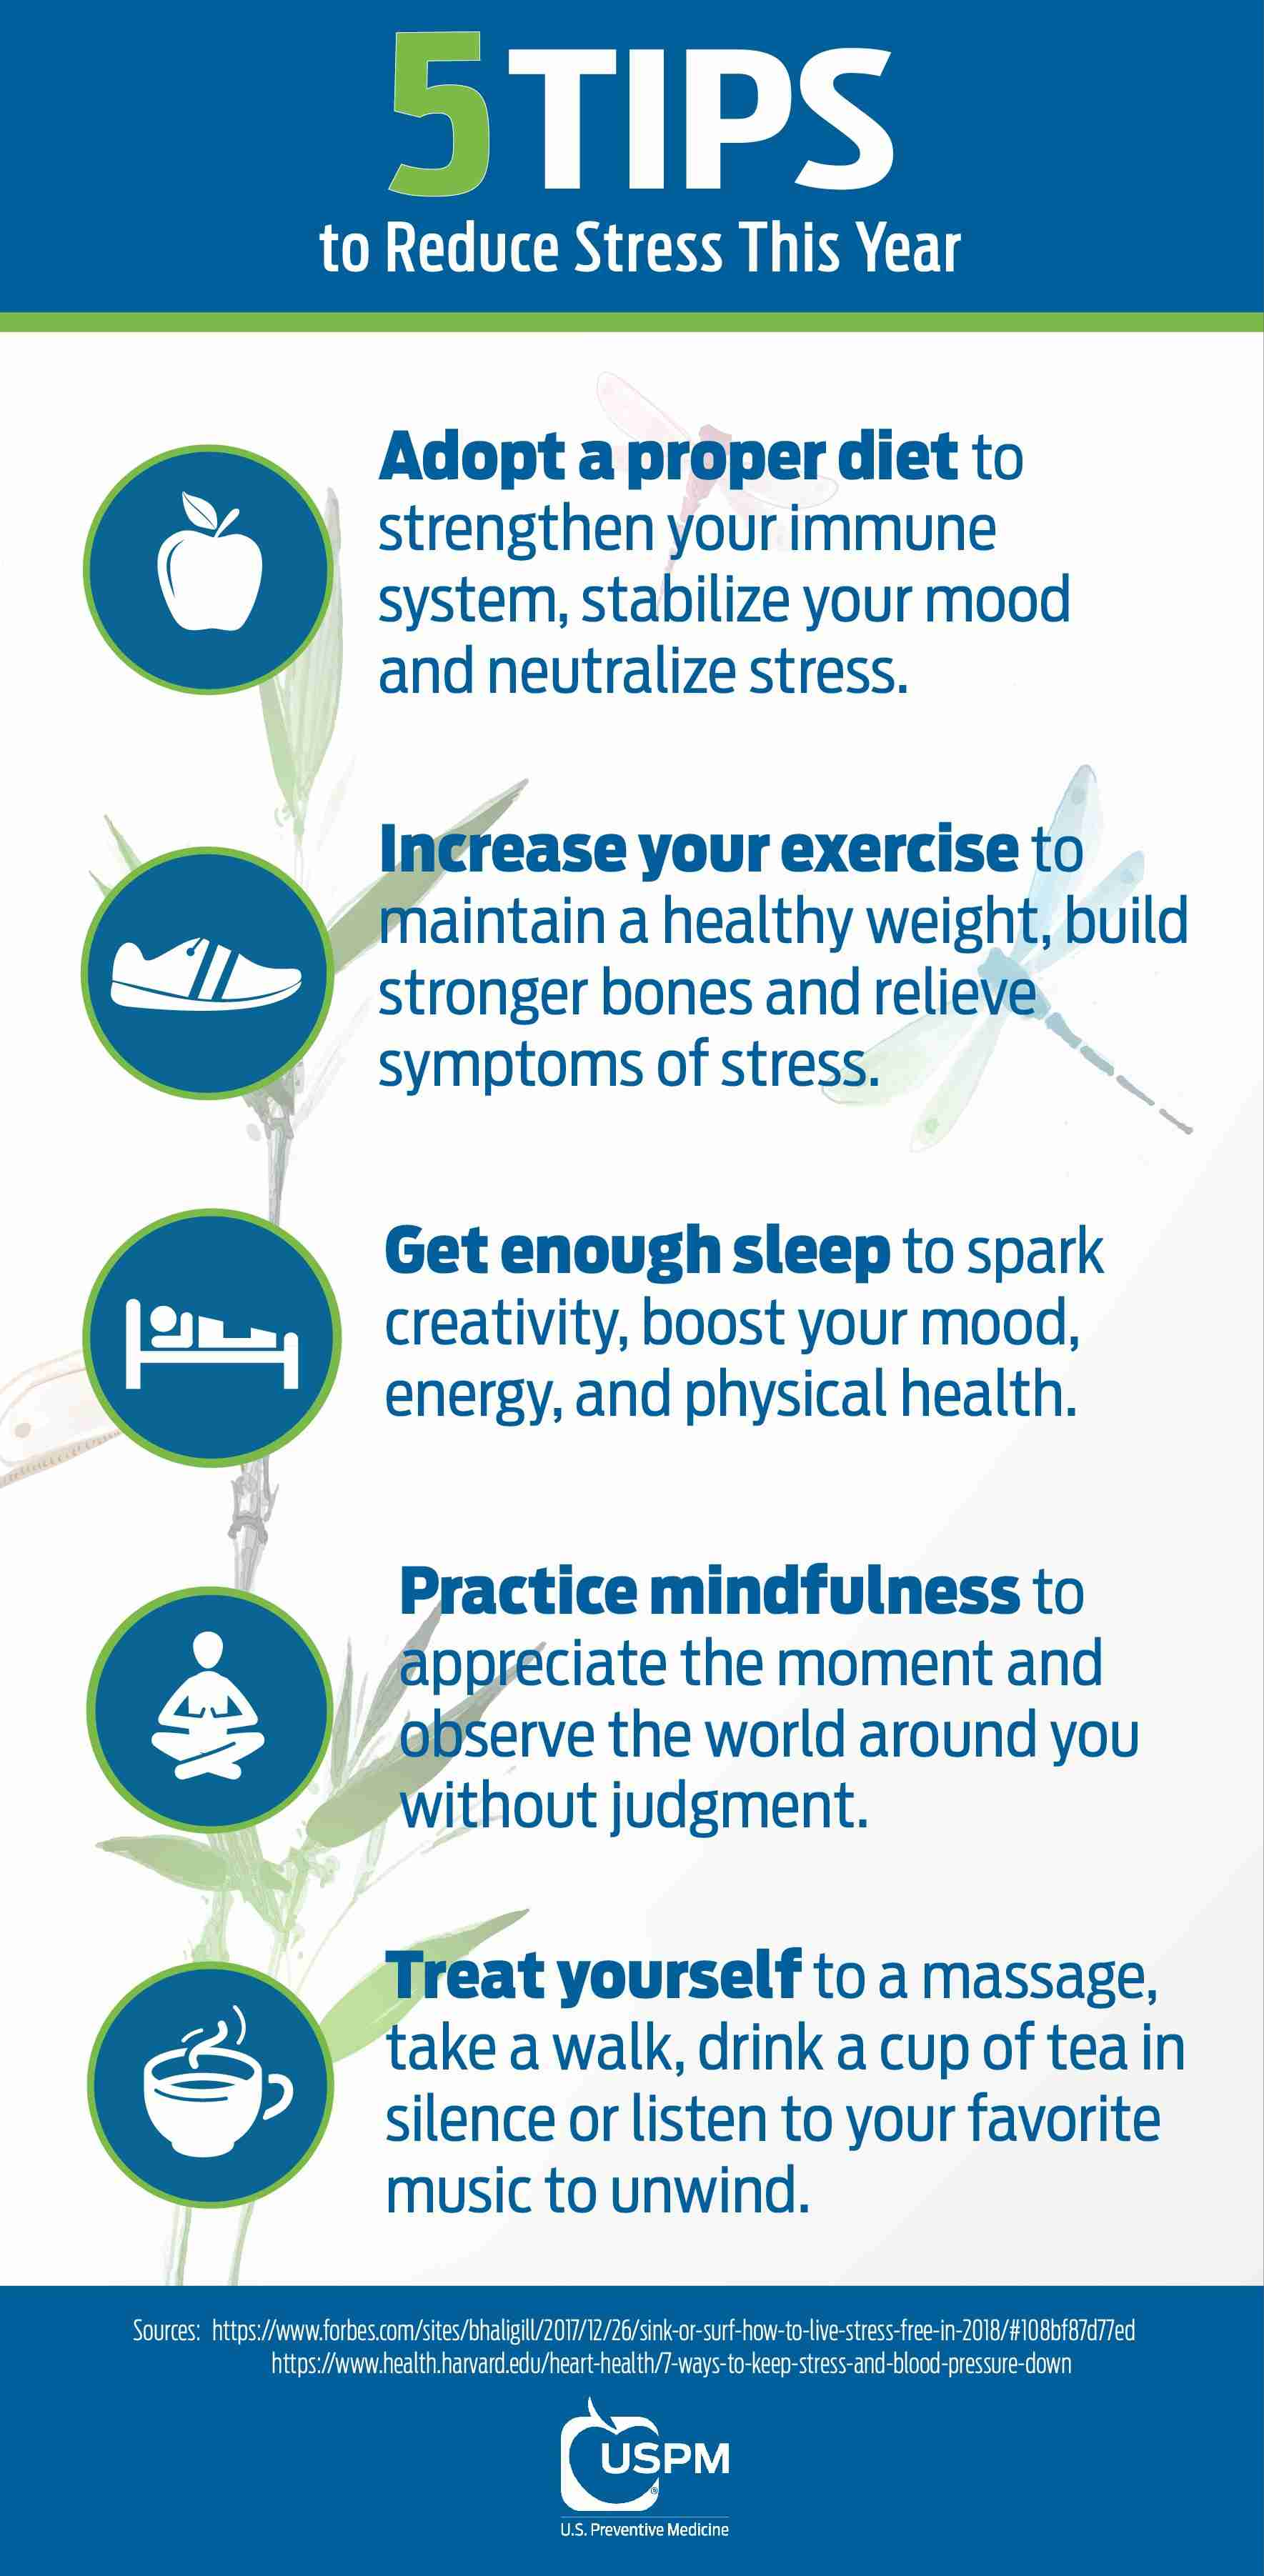 5 Tips to Reduce Stress This Year